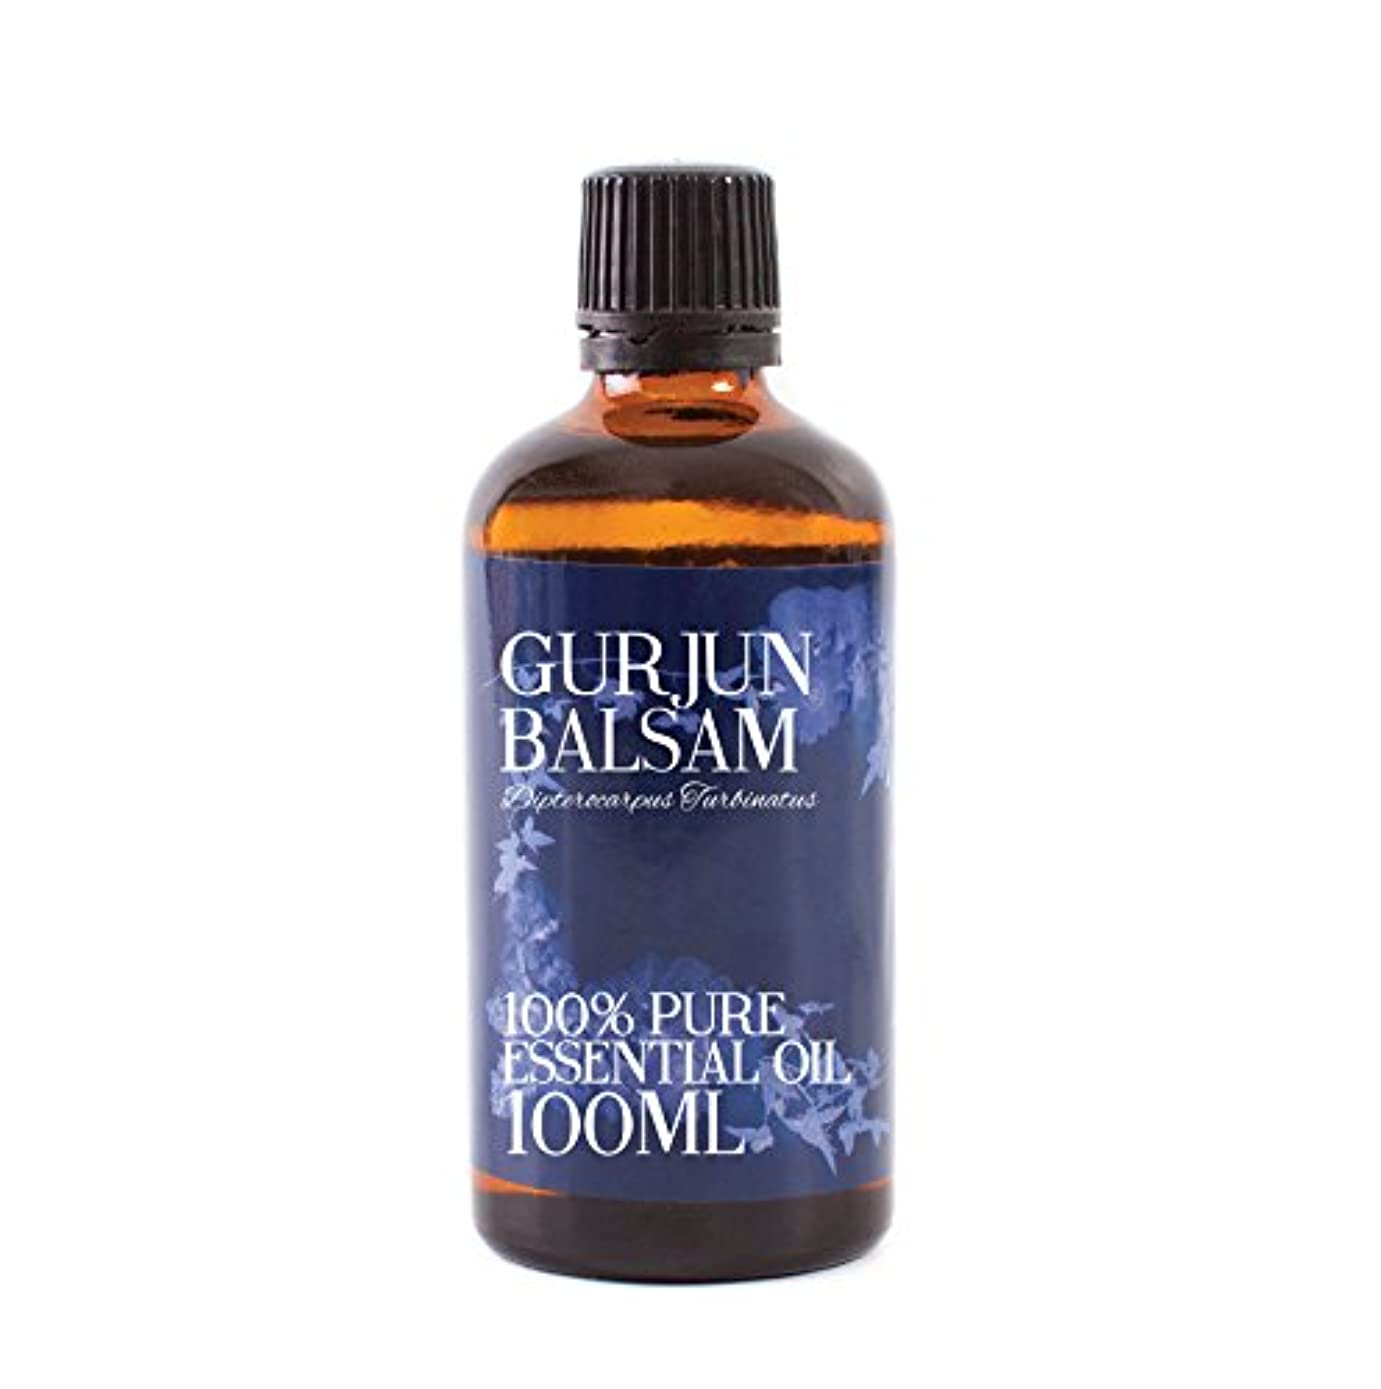 見通し首尾一貫したおばさんMystic Moments | Gurjun Balsam Essential Oil - 100ml - 100% Pure